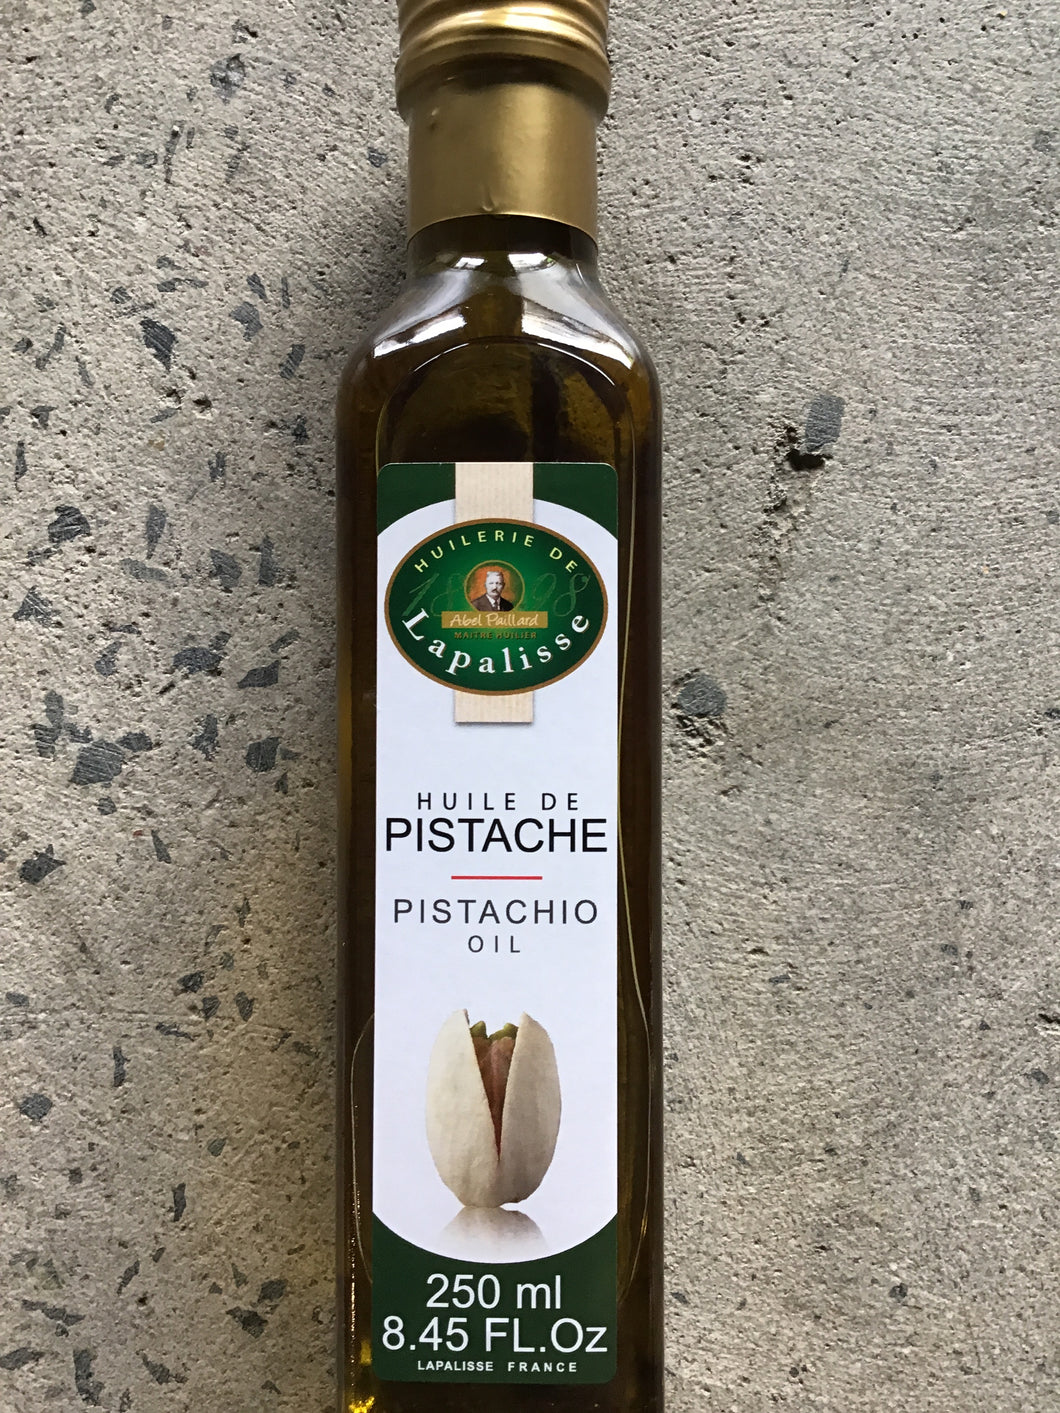 Virgin Pistachio Oil